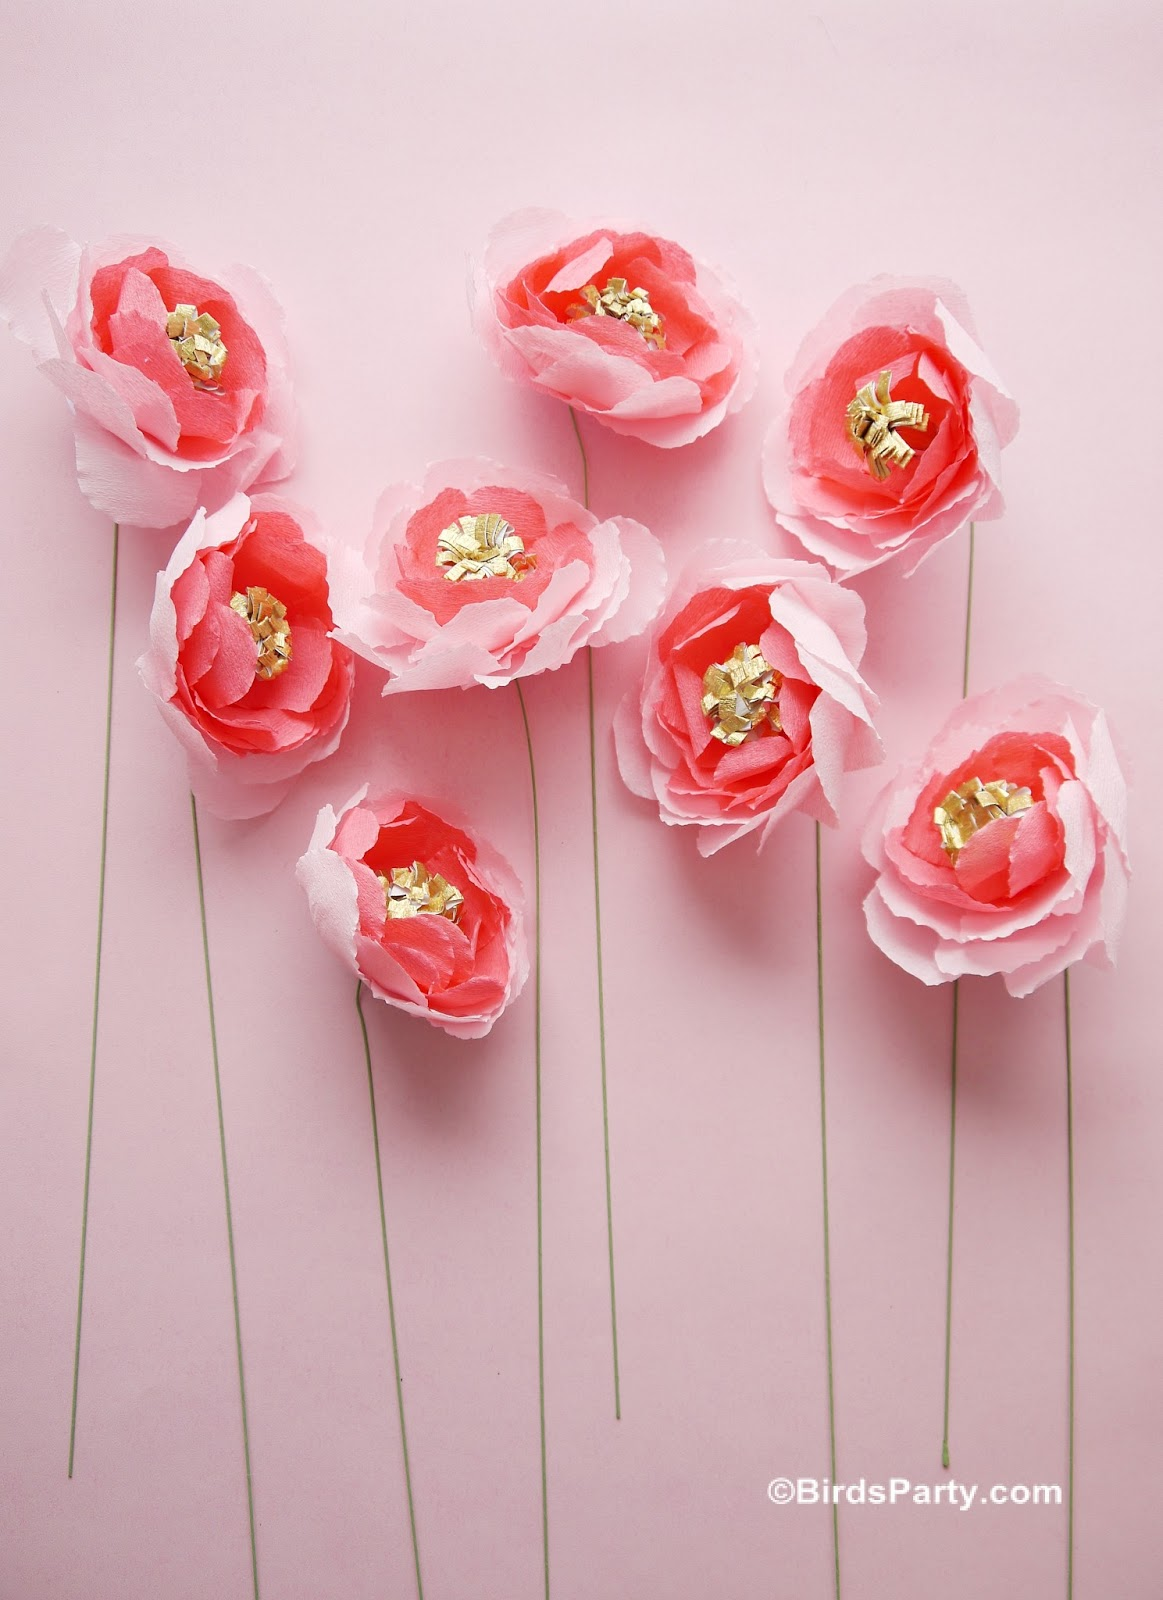 Diy crepe paper flowers bouquet party ideas party printables blog diy crepe paper flowers bouquet mightylinksfo